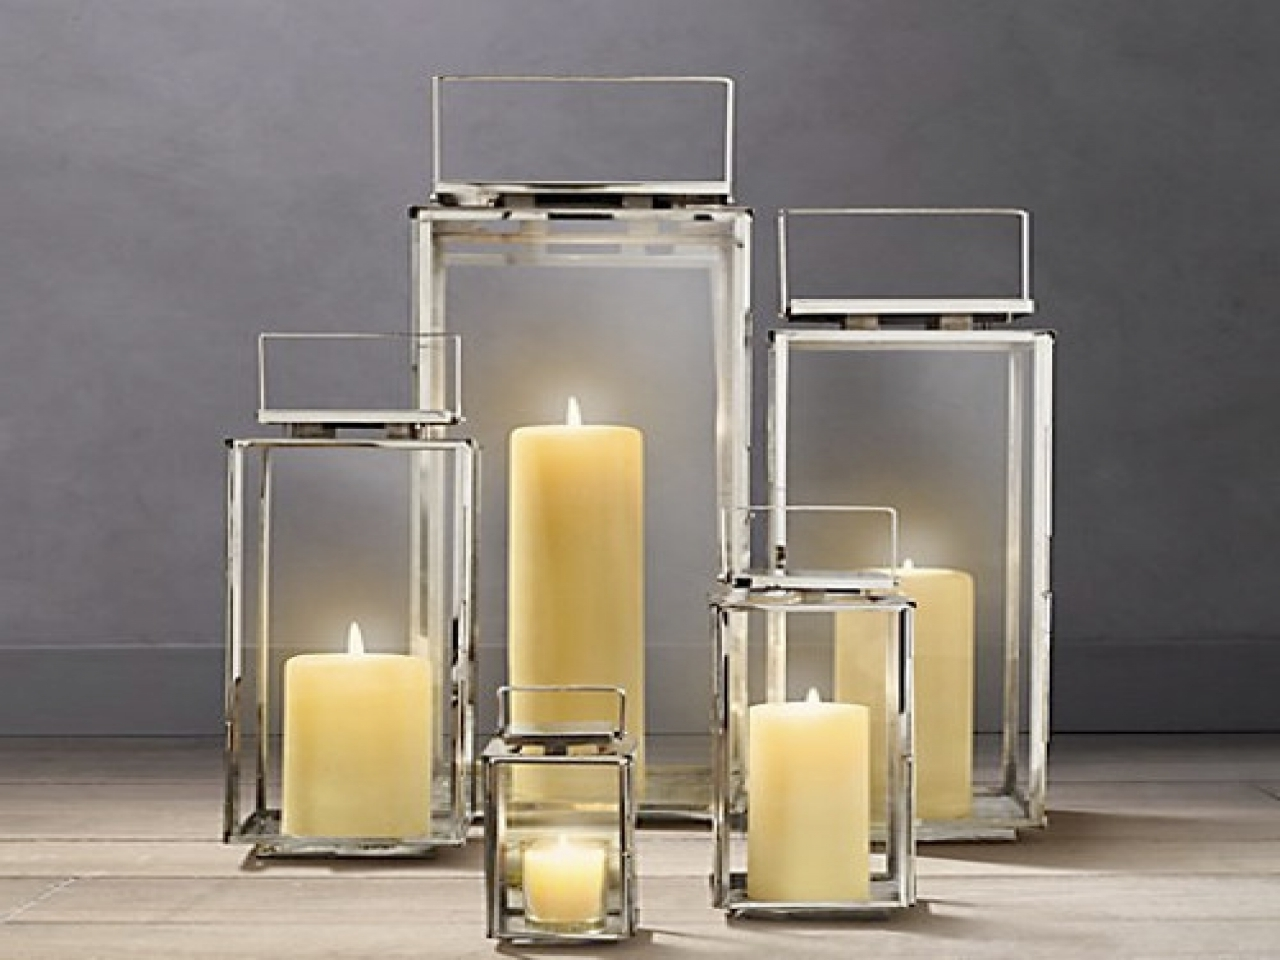 Preferred List Of Synonyms And Antonyms The Word Outdoor Candle Lanterns Grade Throughout Outdoor Lanterns With Battery Operated Candles (View 16 of 20)